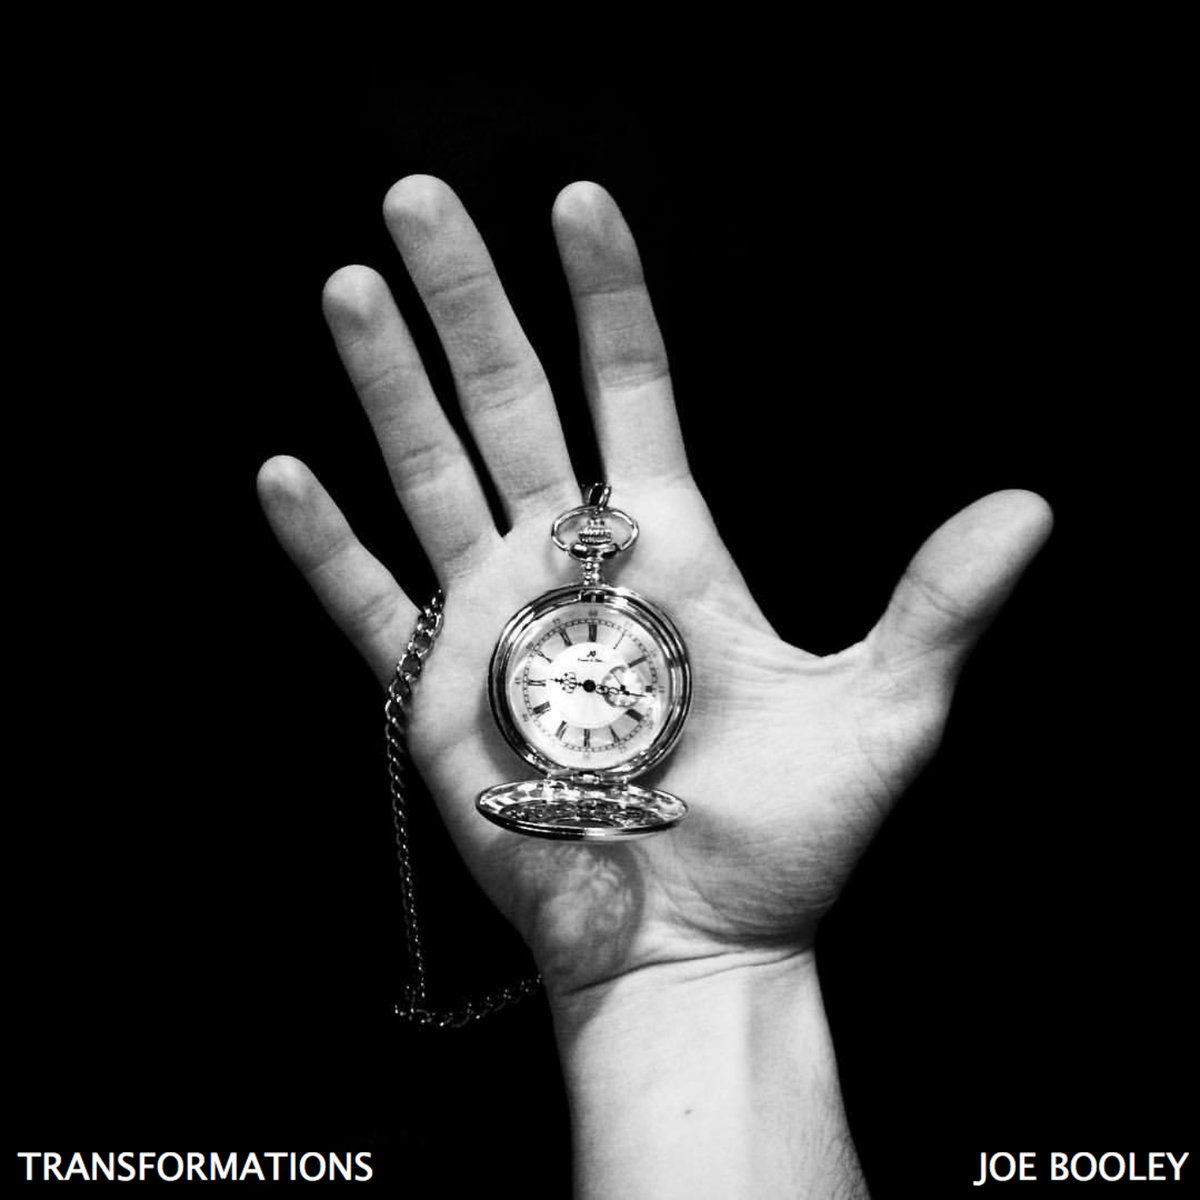 Joe Booley - TRANSFORMATIONS